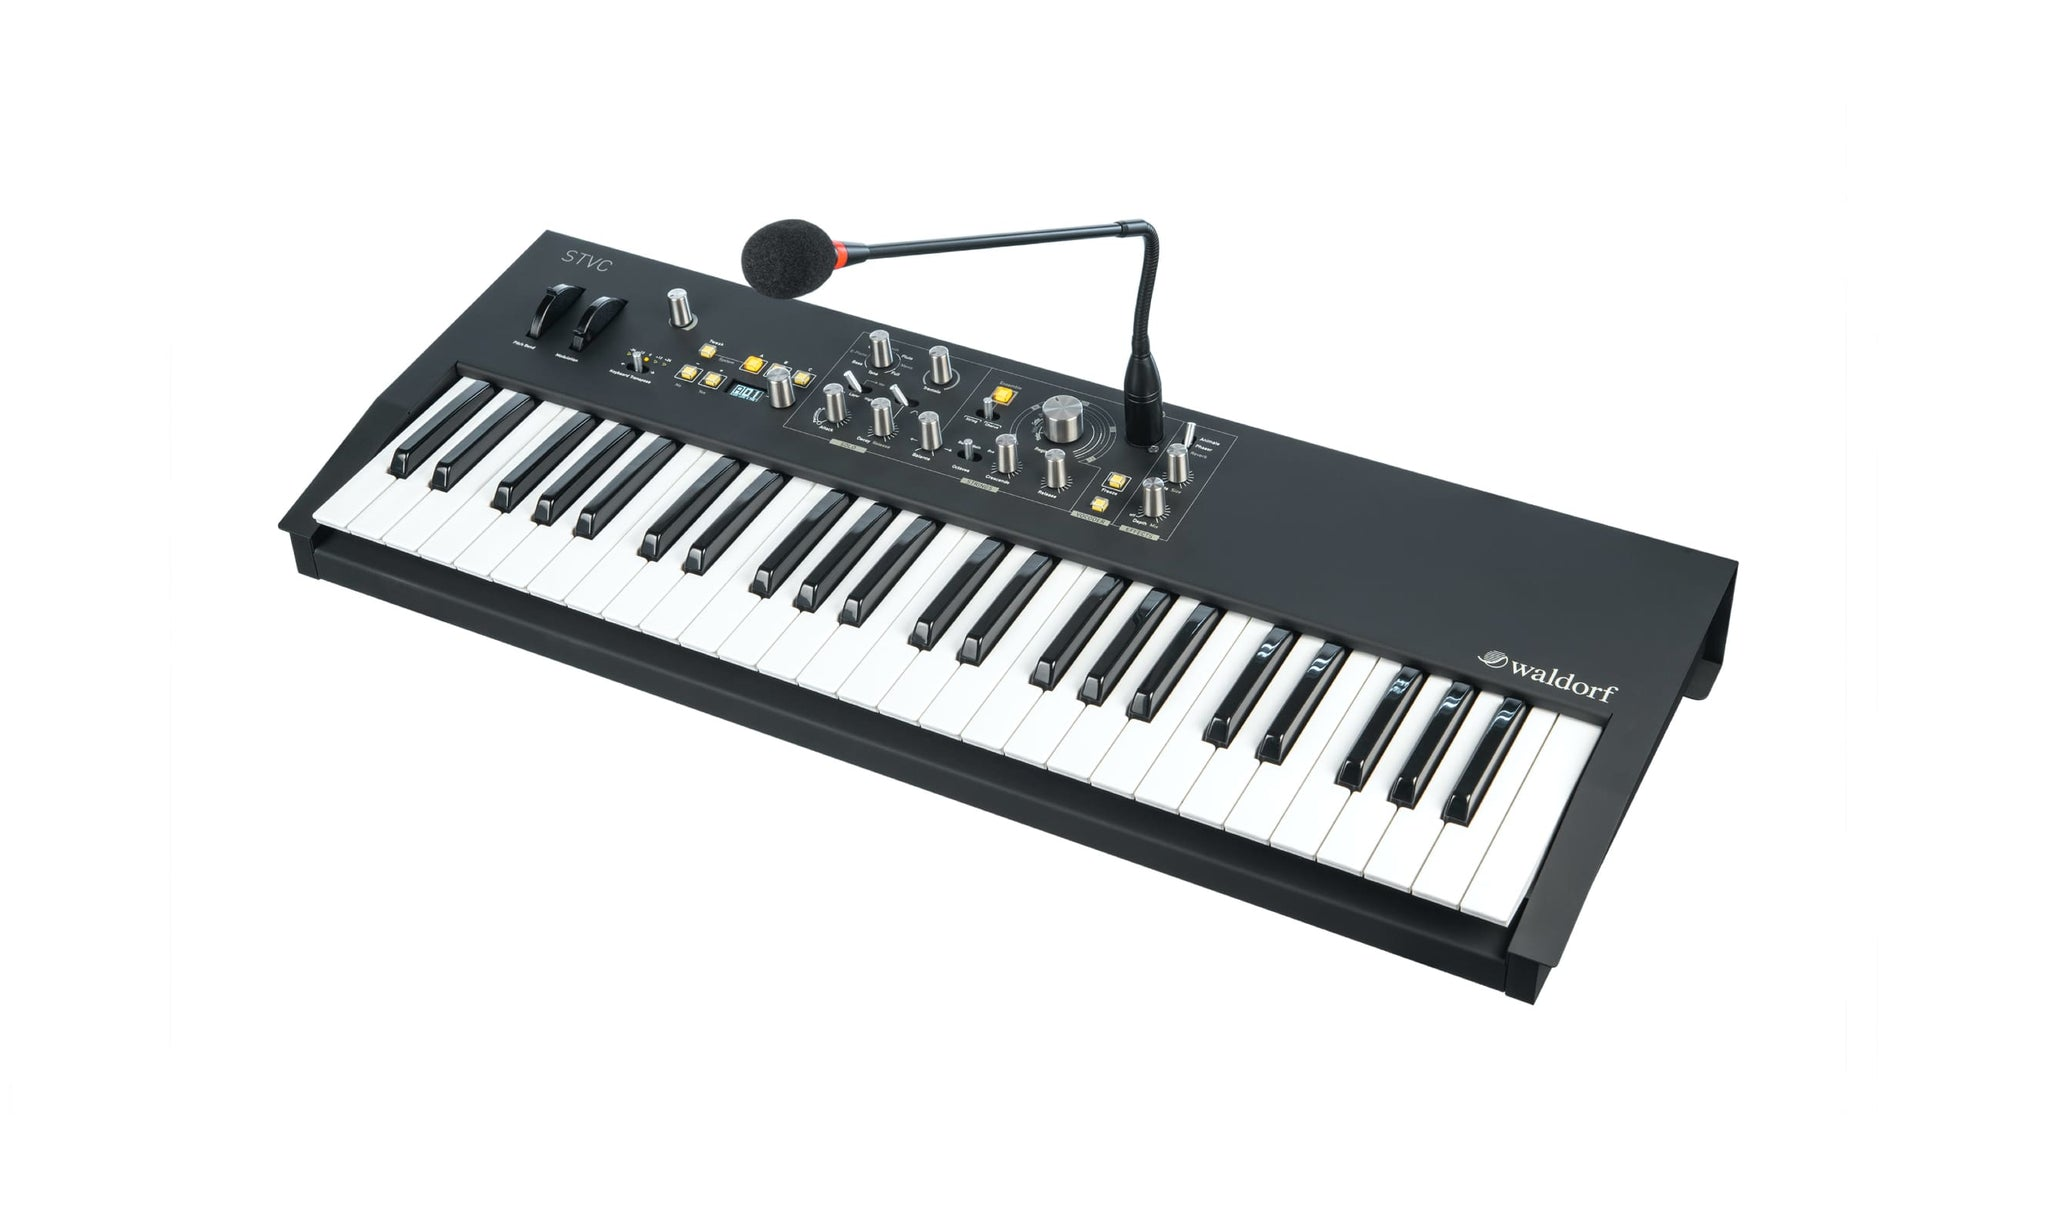 Waldorf STVC String synthesizer with a vocoder